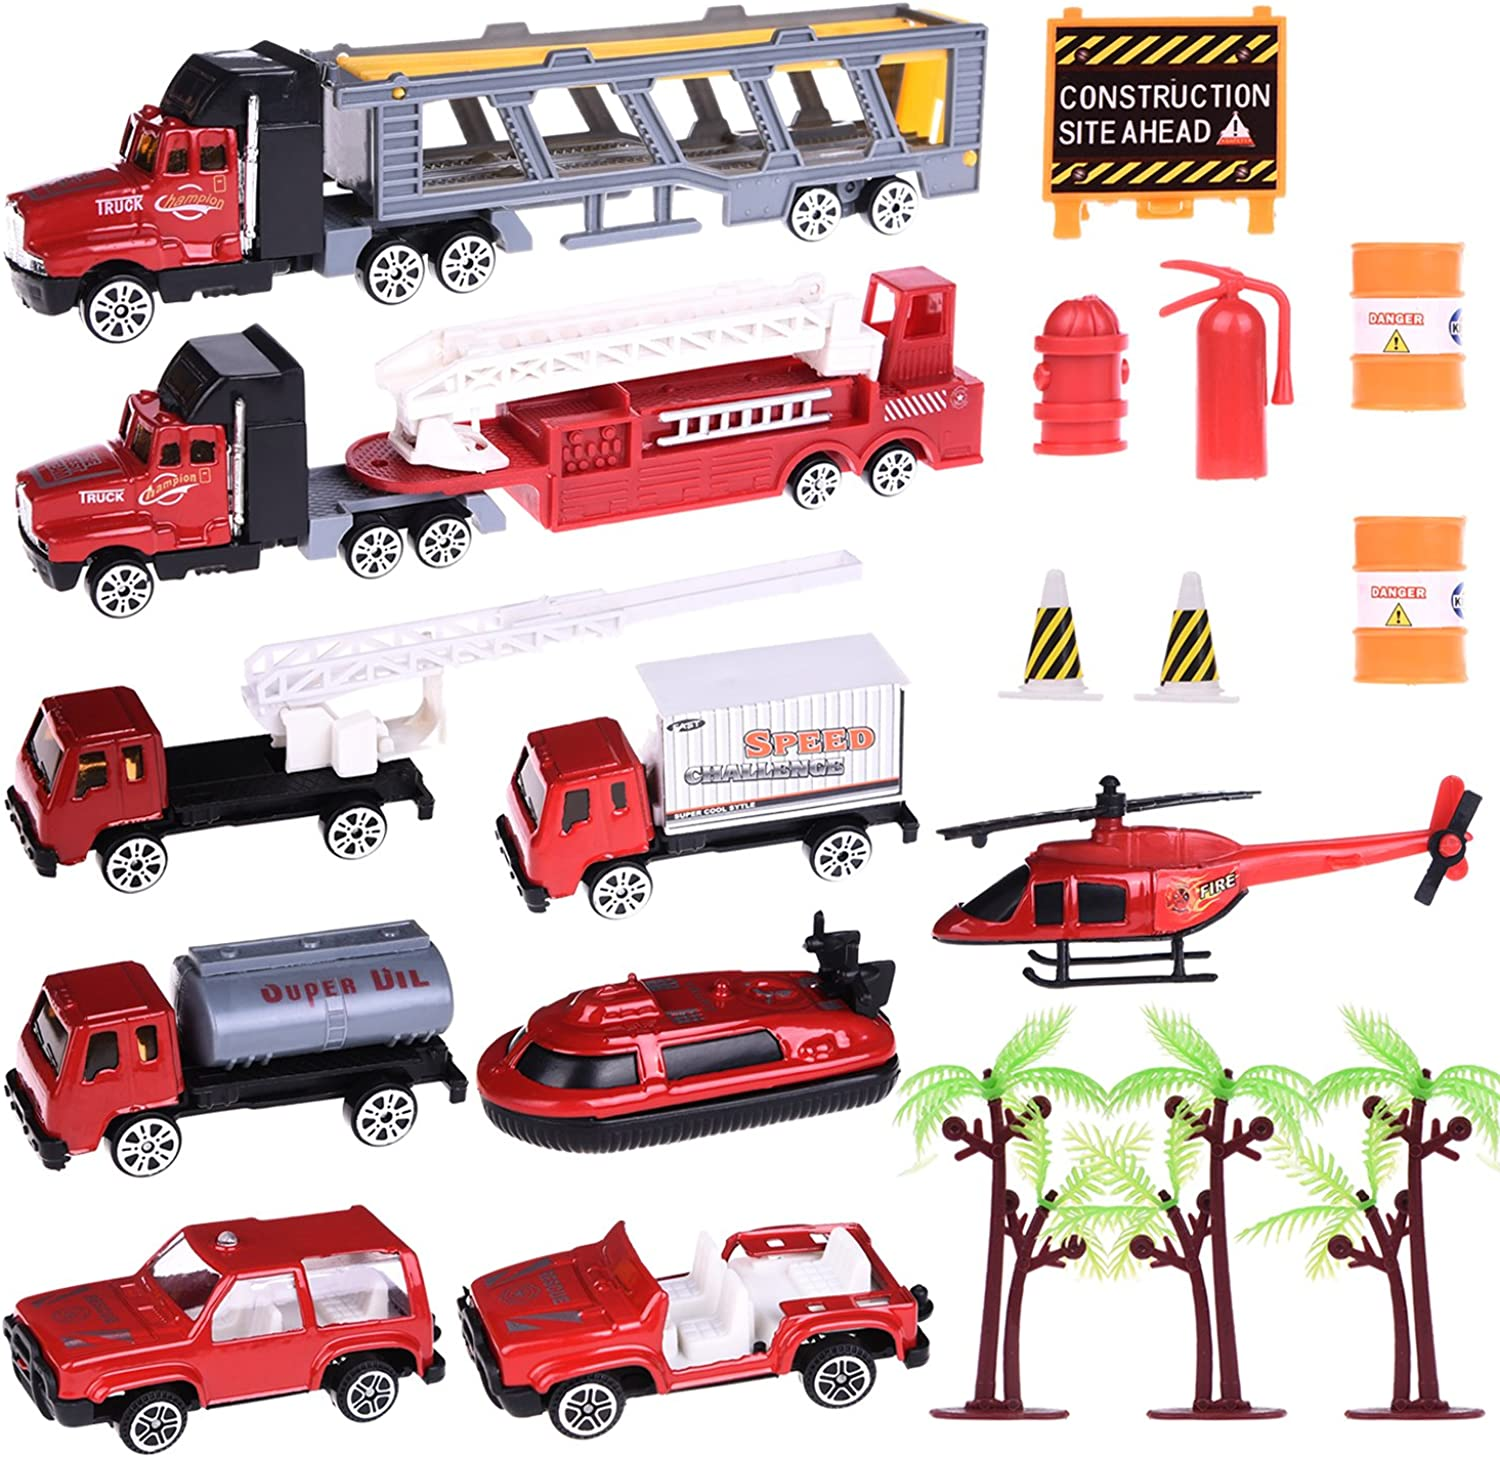 Diecast Car Set Fire Rescue Hero Role Play Action Figures Matchbox Back to School Vehicle Playset for Birthday Parties, Classroom Rewards, Goodie Bag Stuffer, Collections - 20pcs